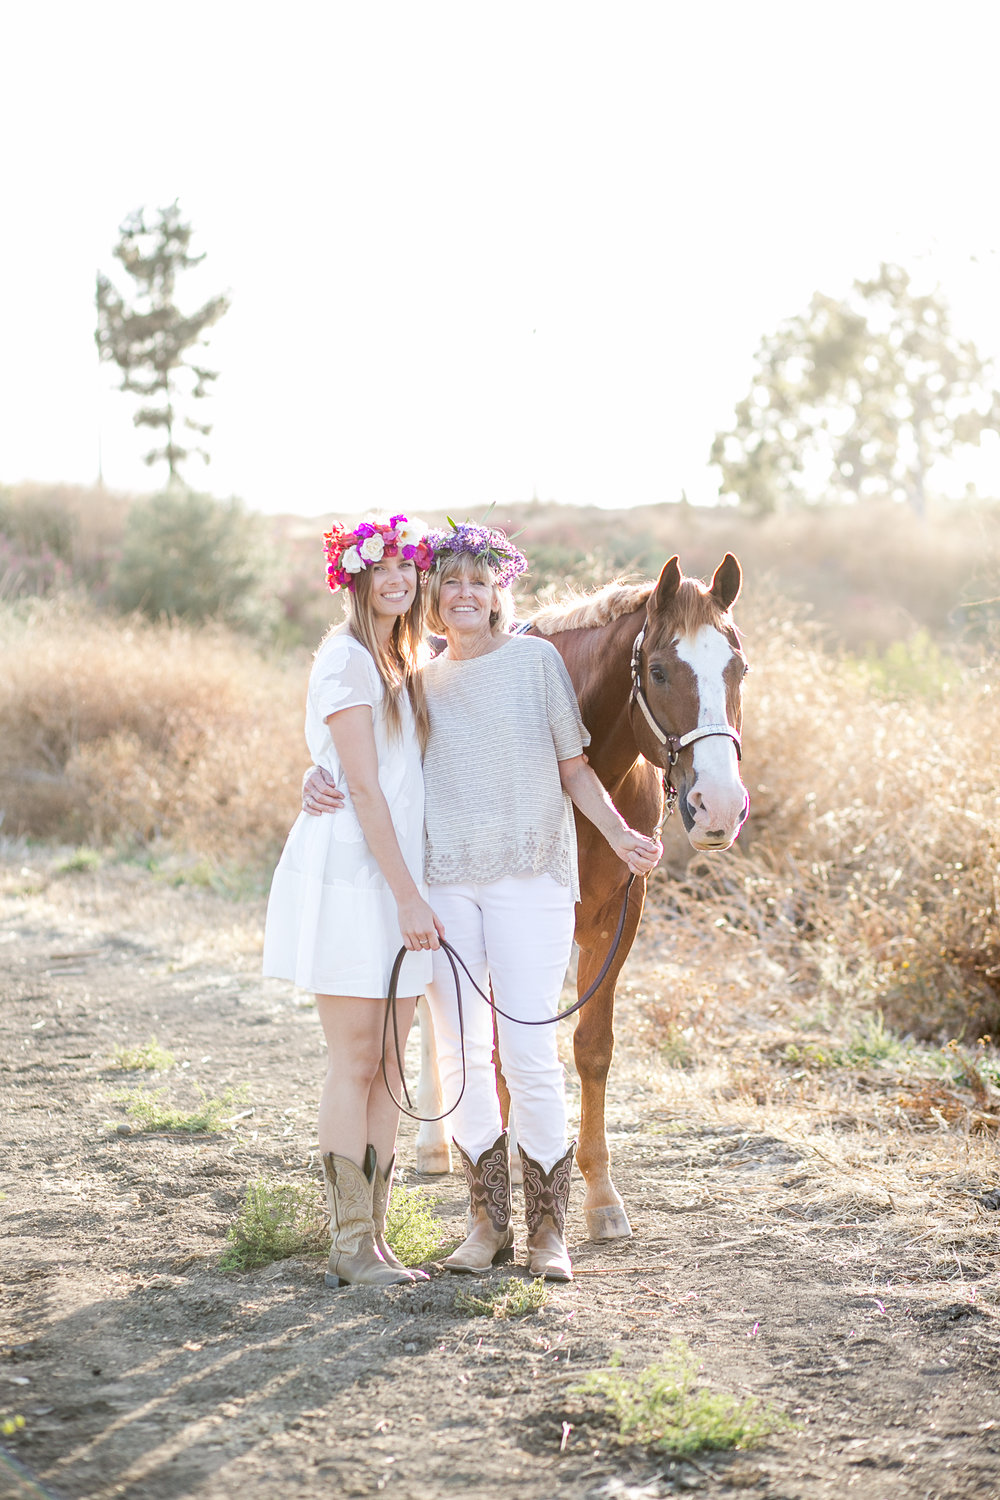 Mendola_Family _Session_Del_Mar_Equestrian_Ranch_2017-12.jpg